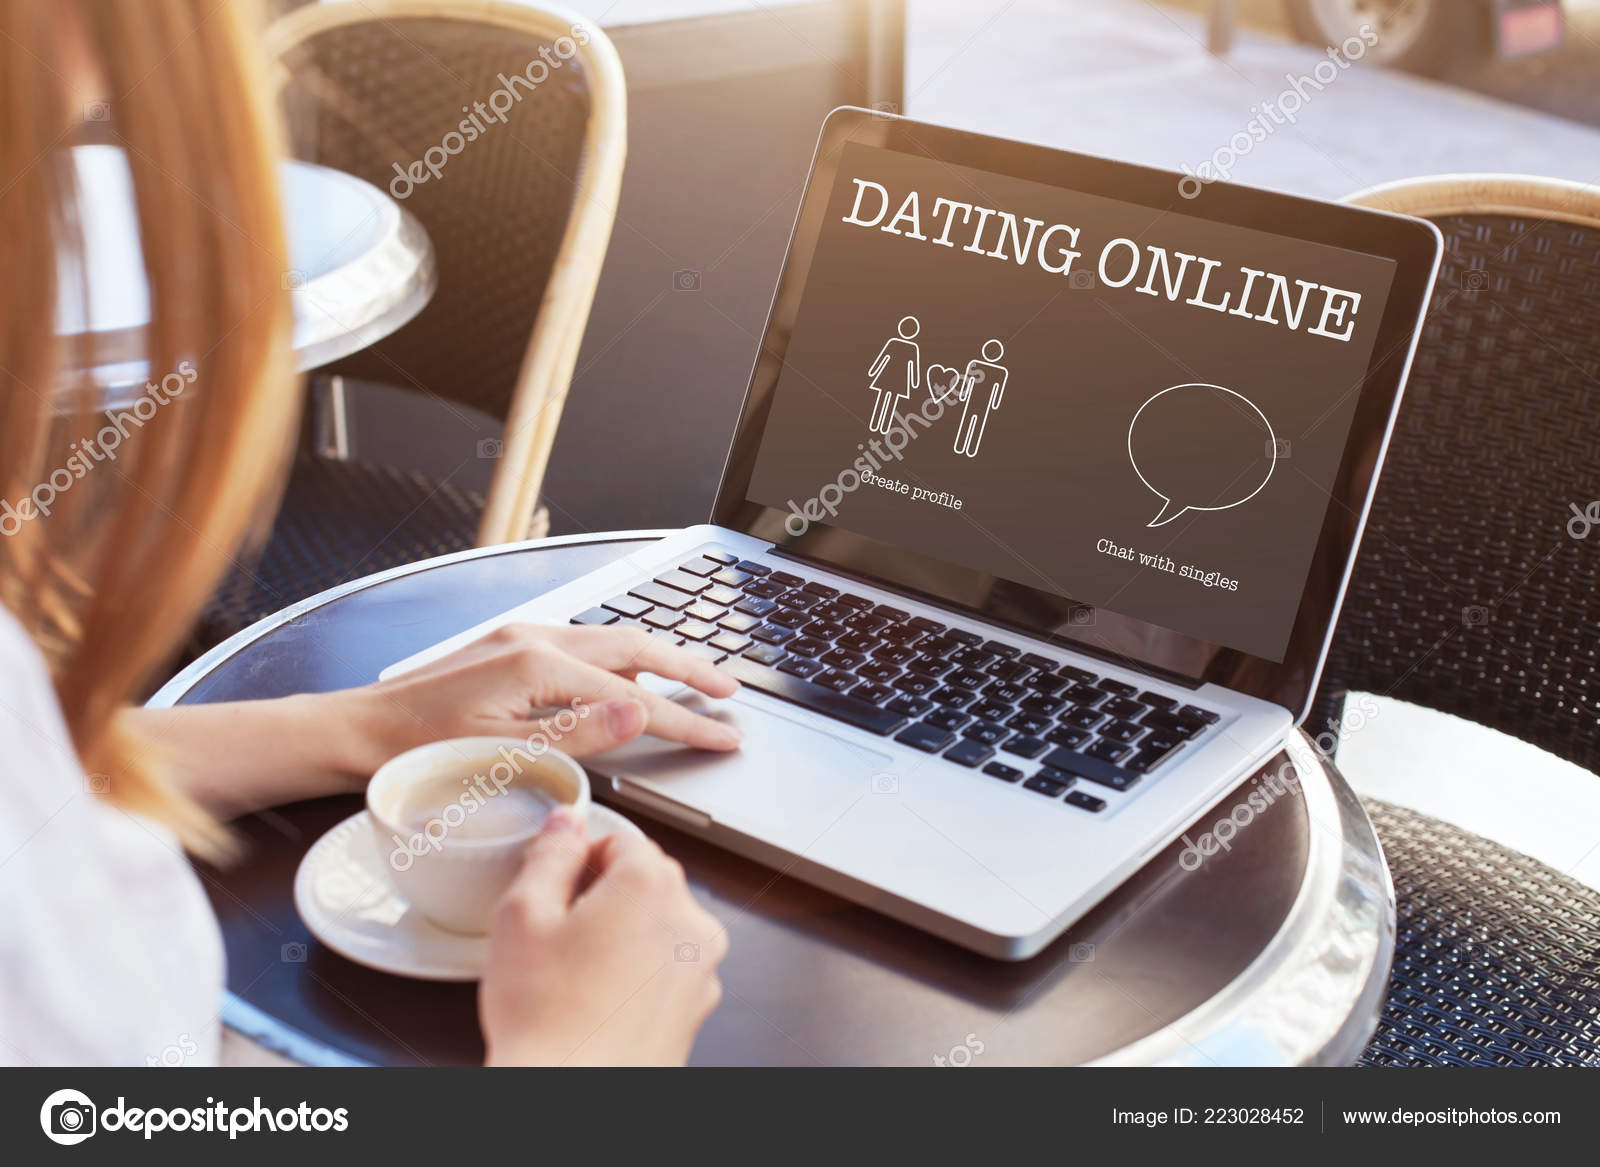 Cyprus dating forum